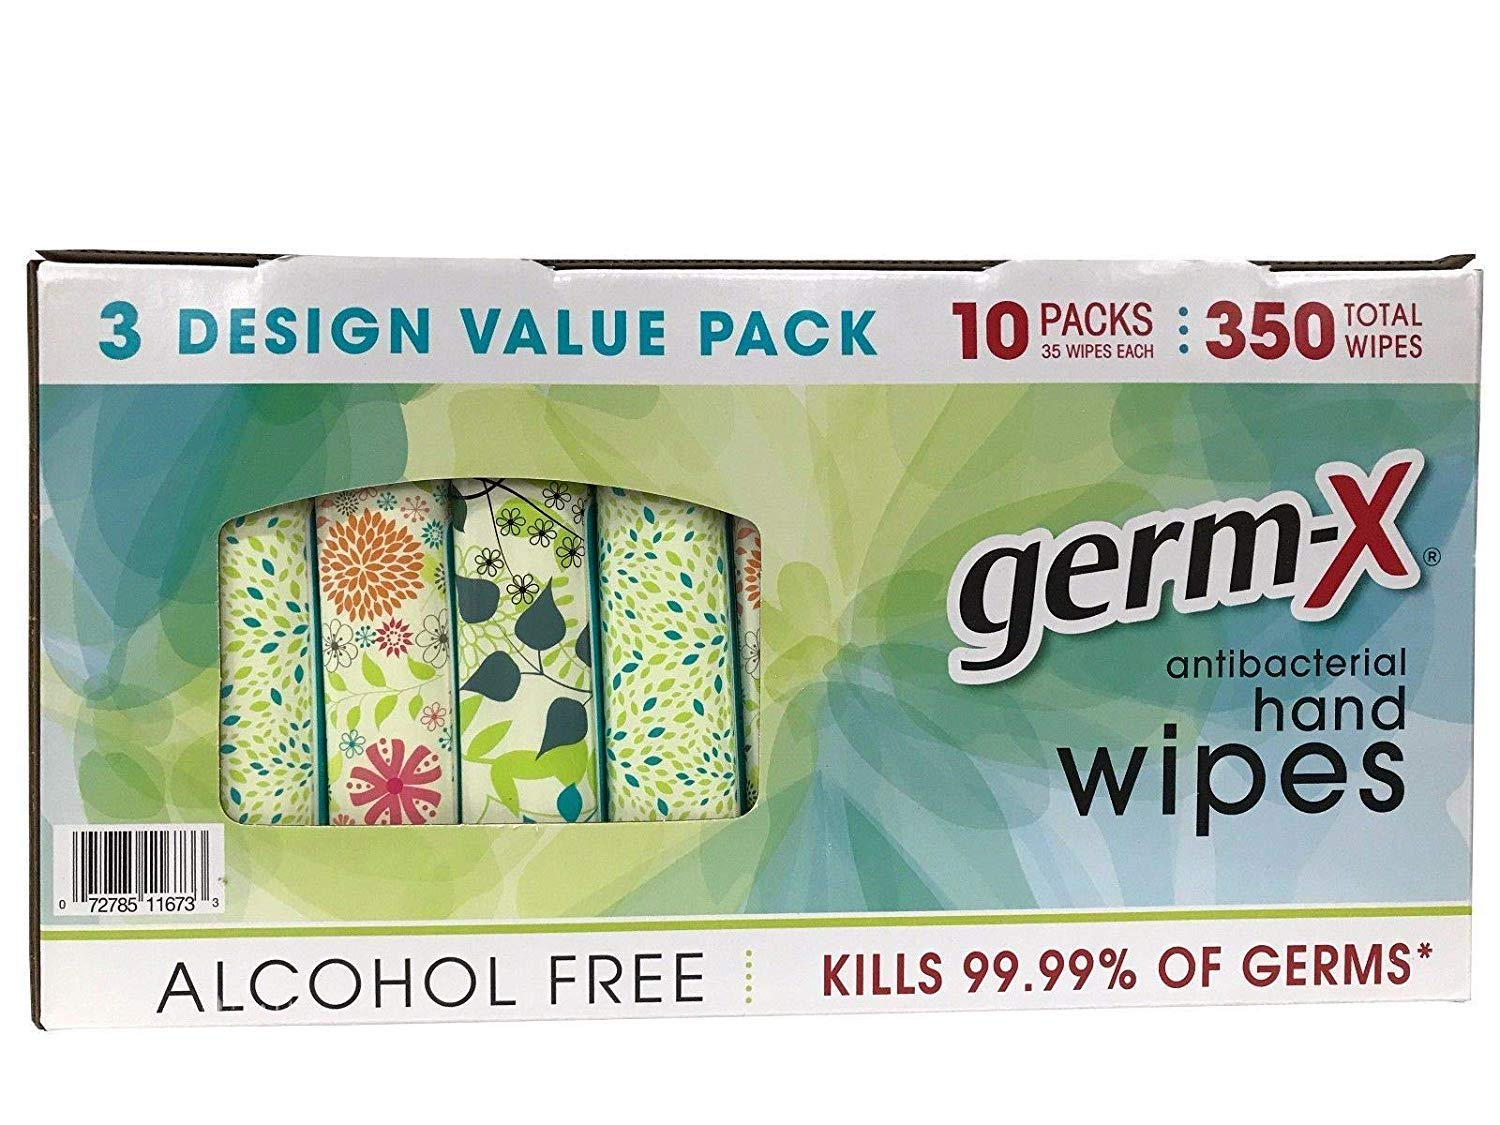 Germ-X Antibacterial Hand Wipes Designer Pack - 10 packs - 350 Total